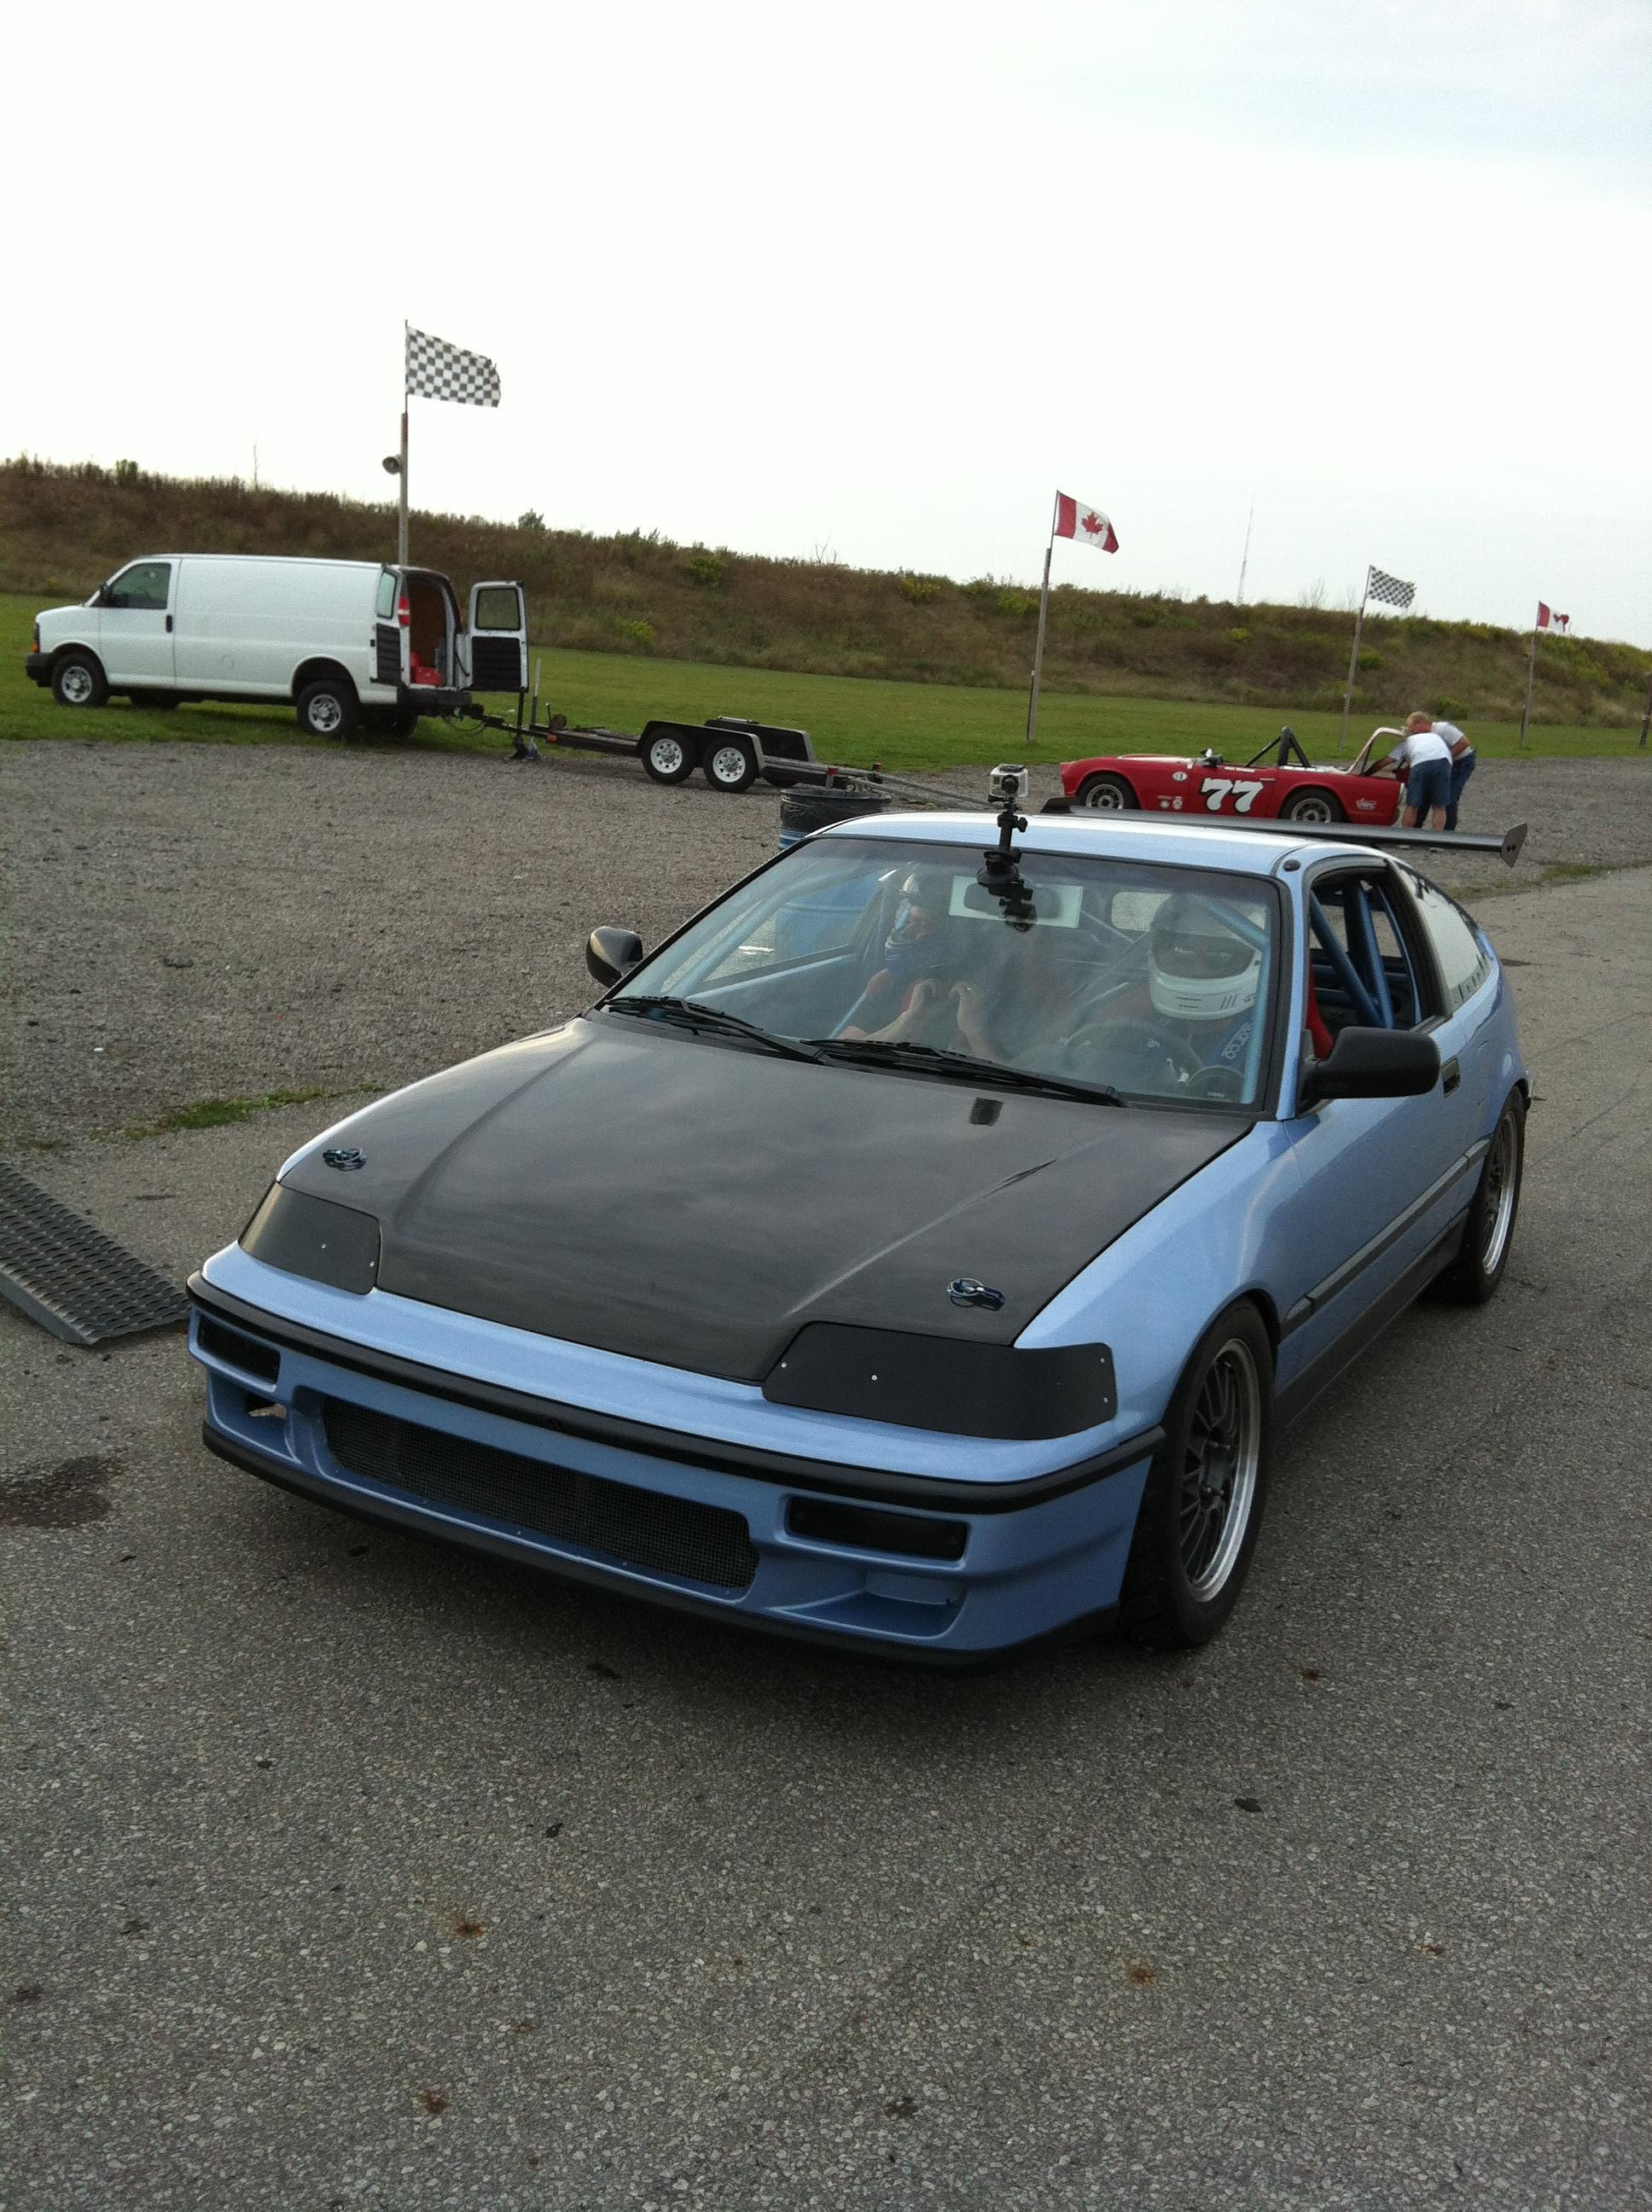 Cars For Sale In Wisconsin >> 1989 Honda CRX Race/Track Car & Trailer Package For Sale ...